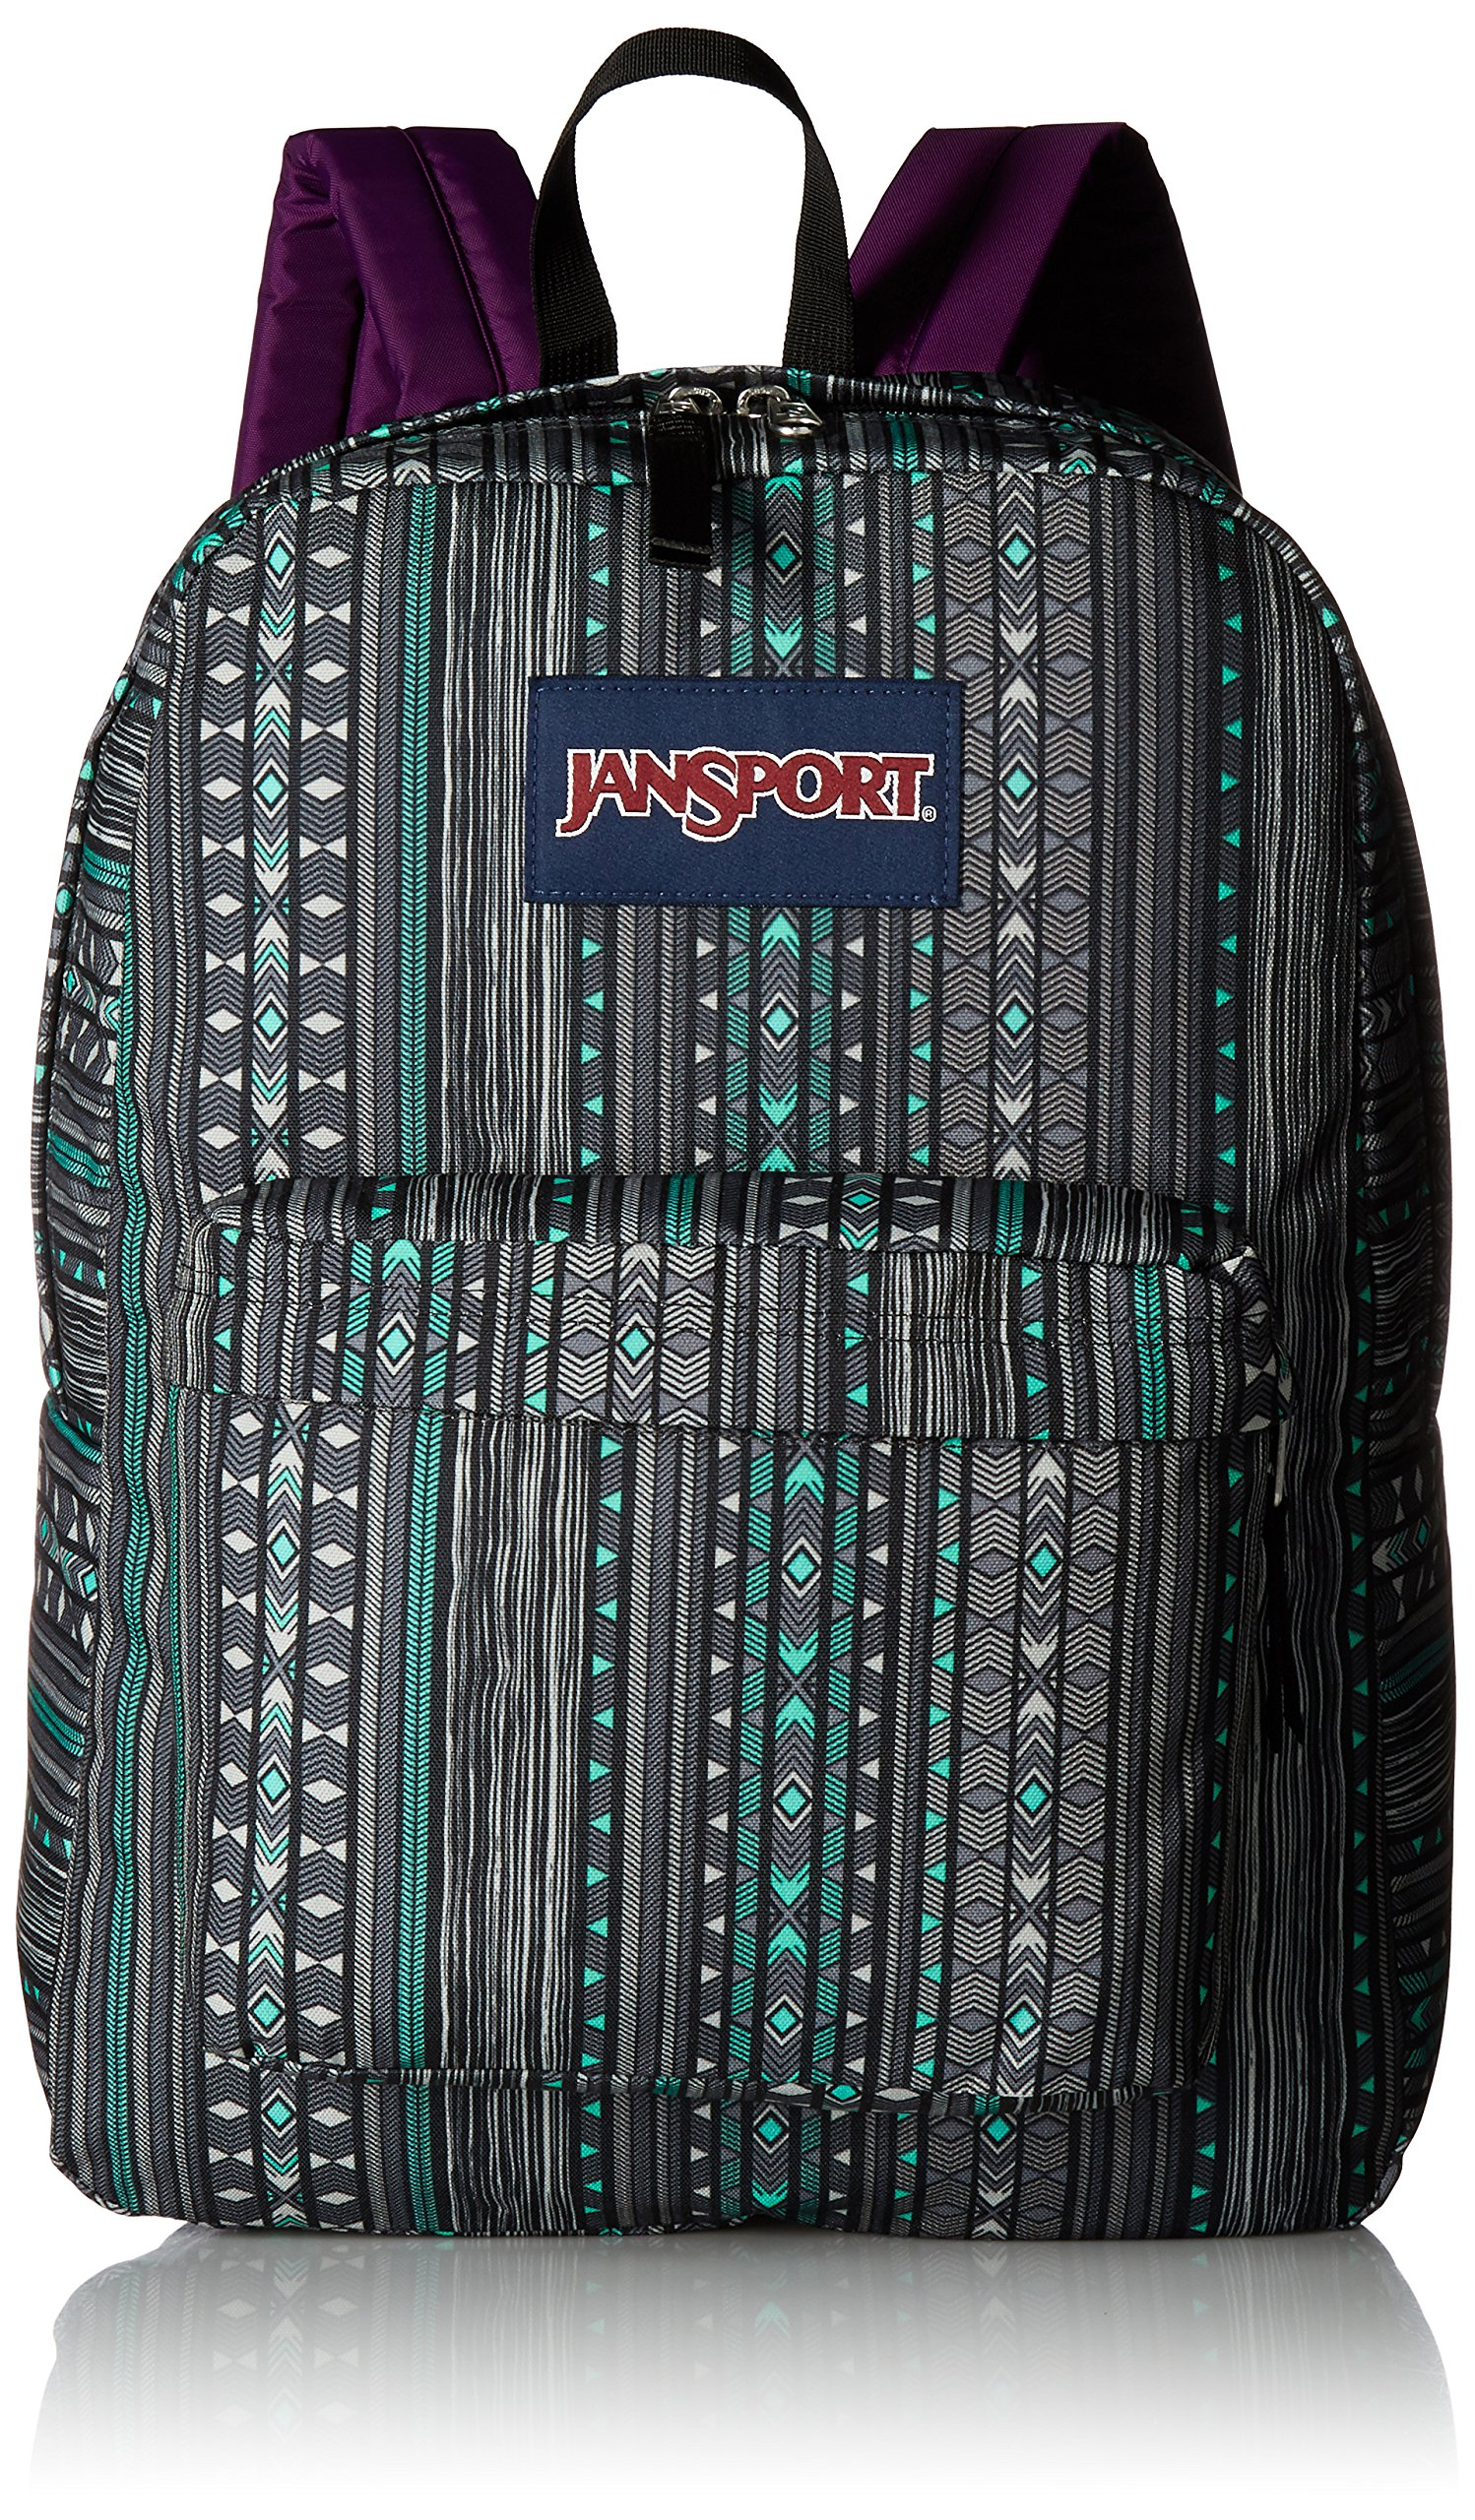 JanSport Superbreak Back Pack Seafoam Green Camo Stripe One Size by JanSport